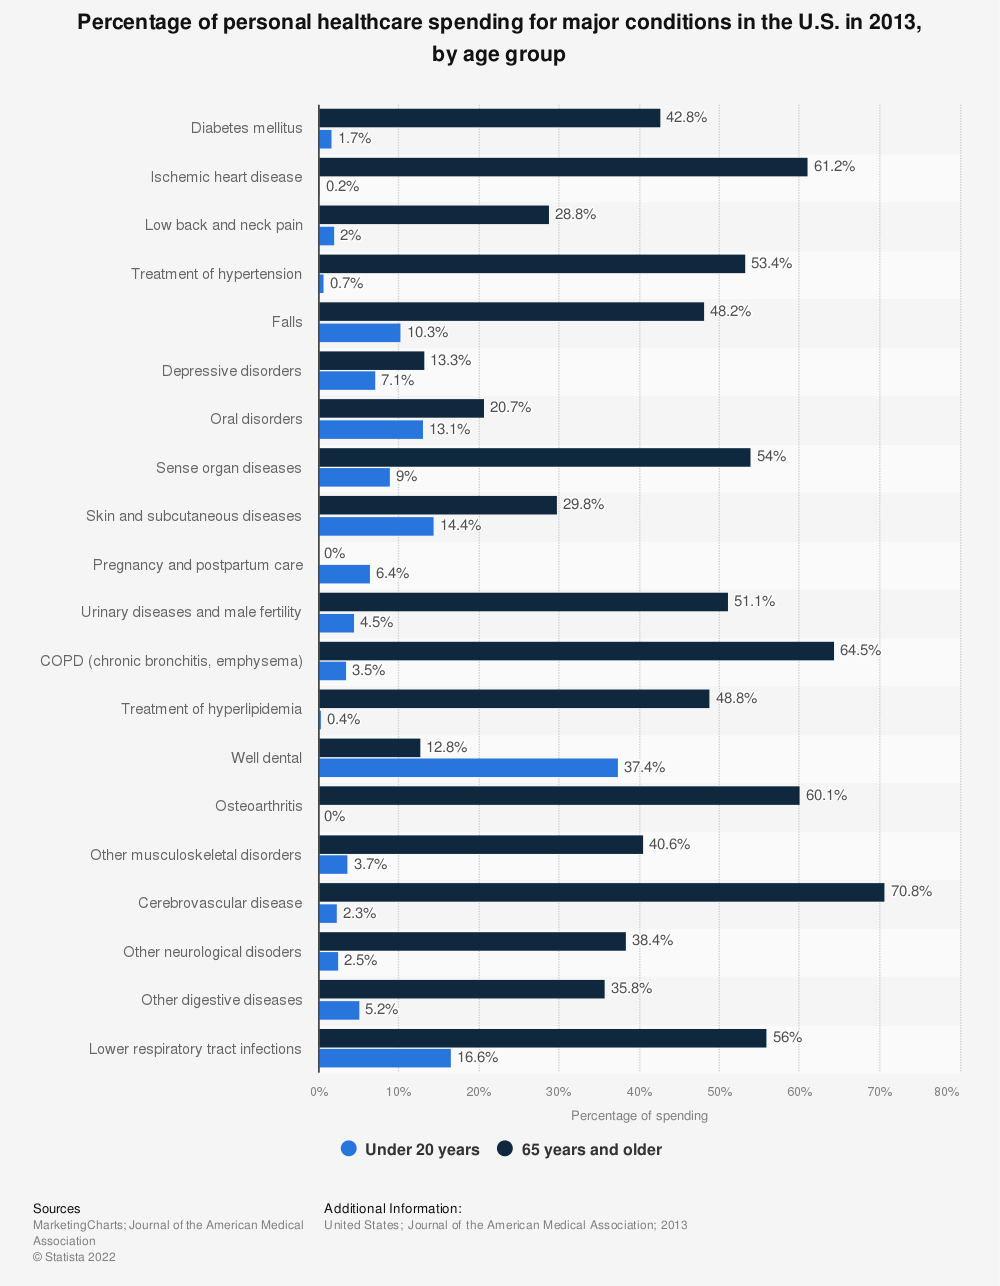 Statistic: Percentage of personal healthcare spending for major conditions in the U.S. in 2013, by age group | Statista